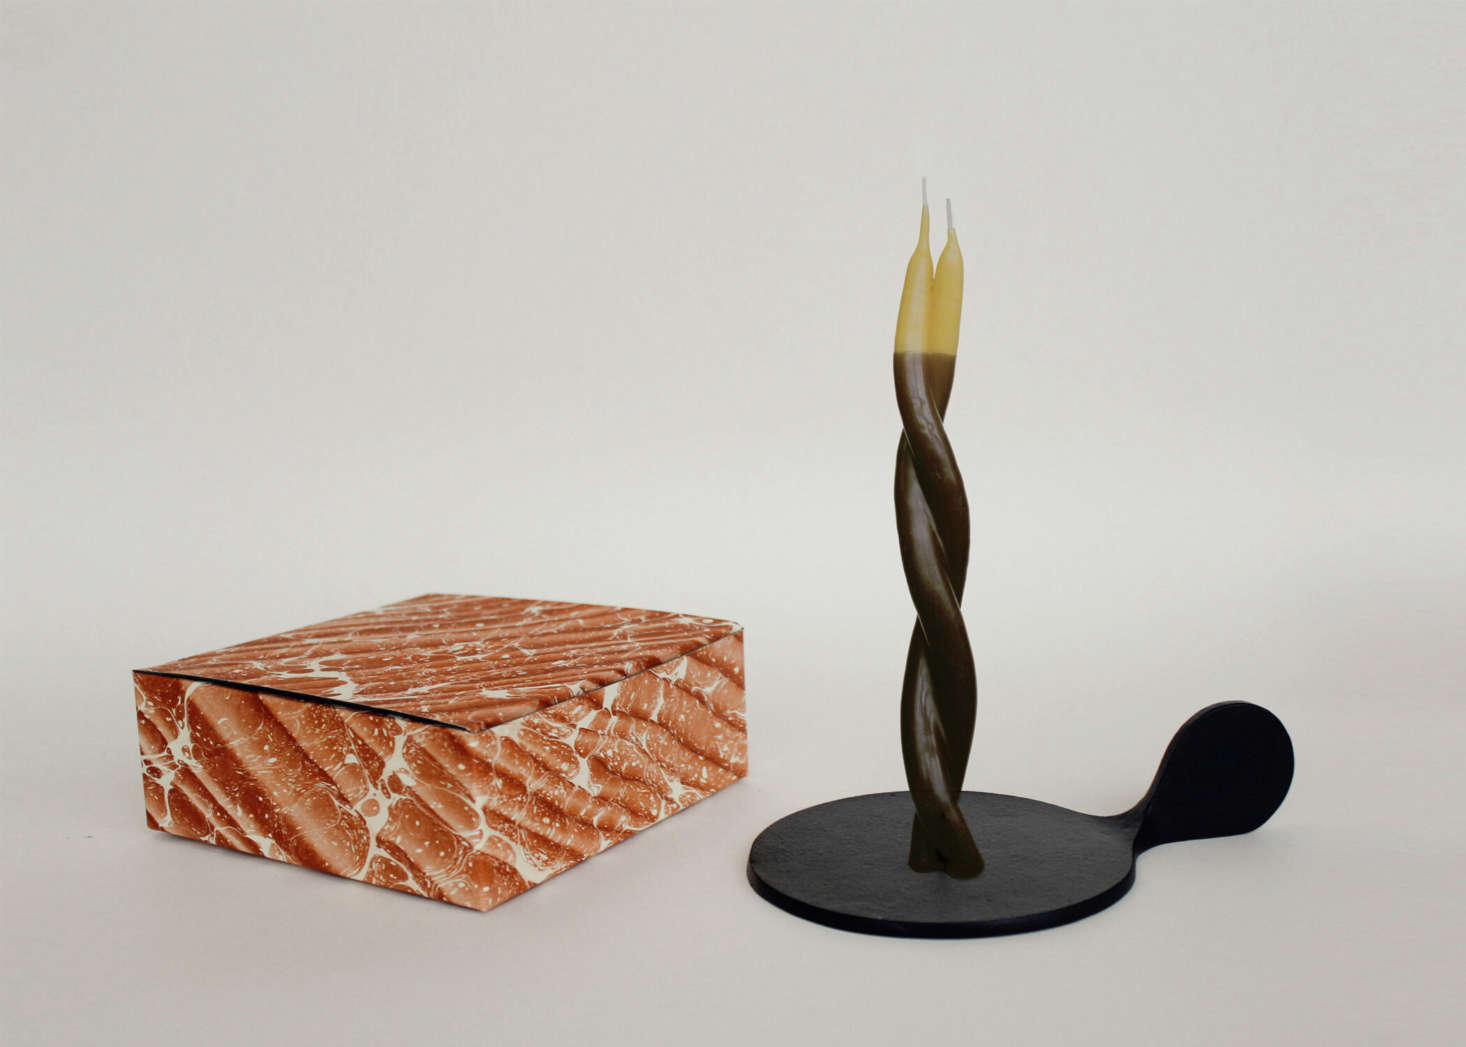 For the Double-Dipped Twisted Candle (£src=